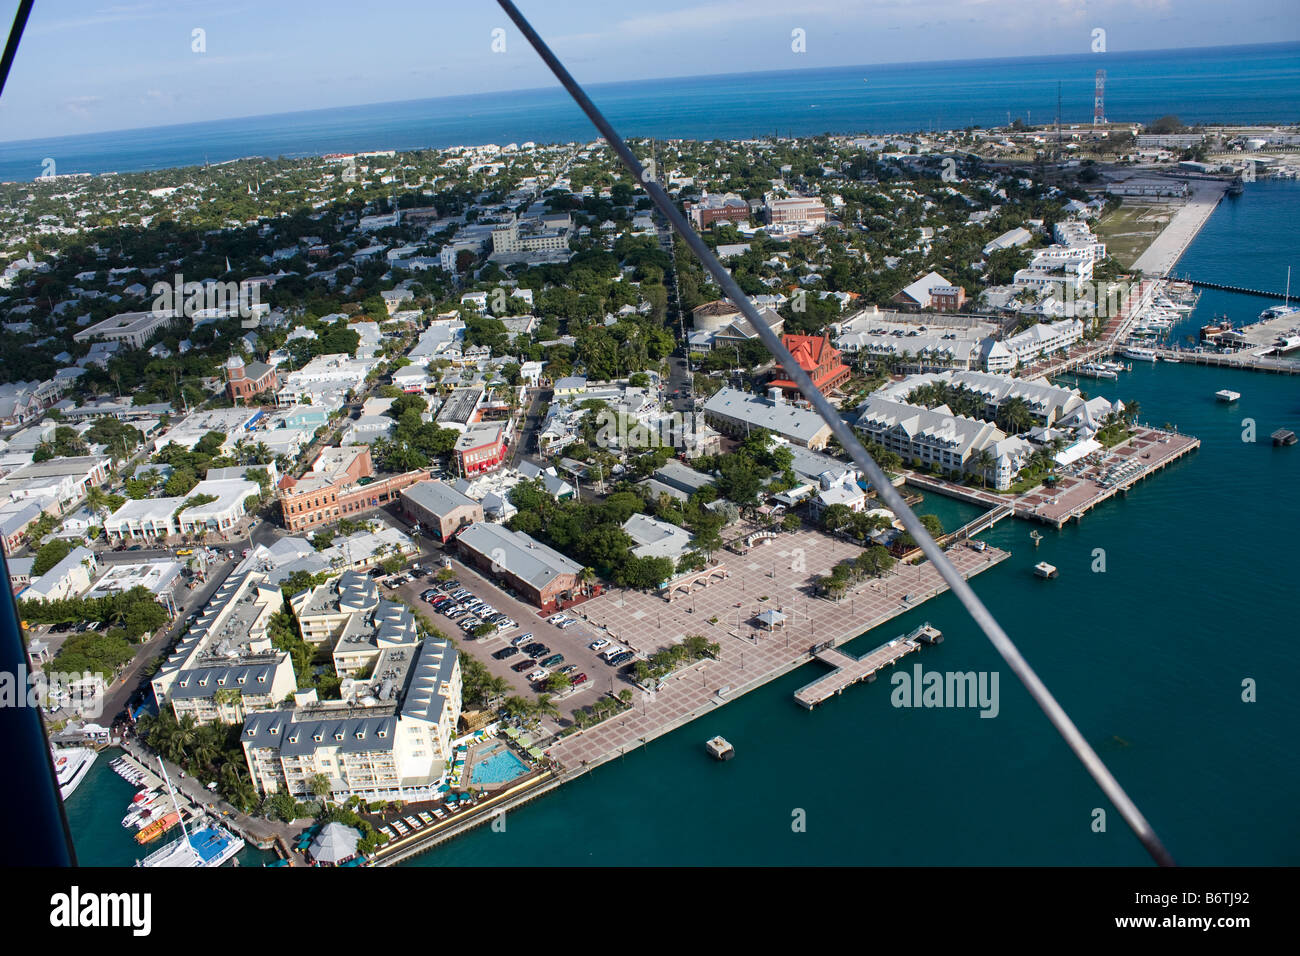 Aerial view of Mallory square and north Duval St in Key West Florida - Stock Image